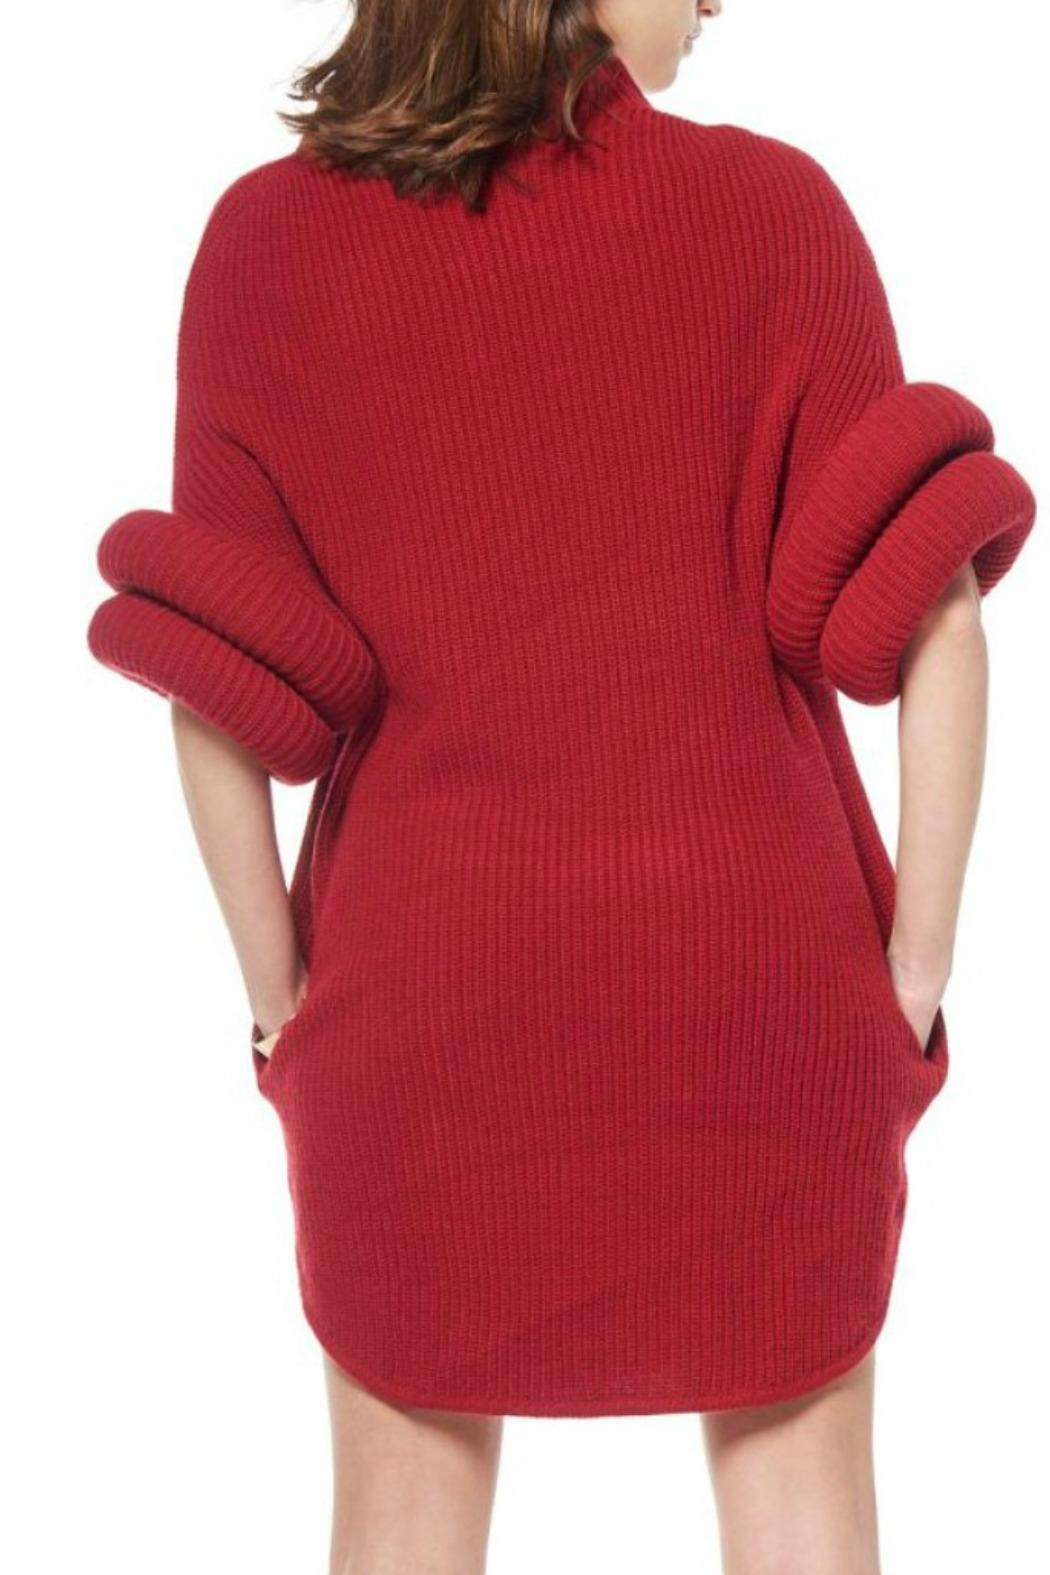 red sweater dresses - Dress Yp